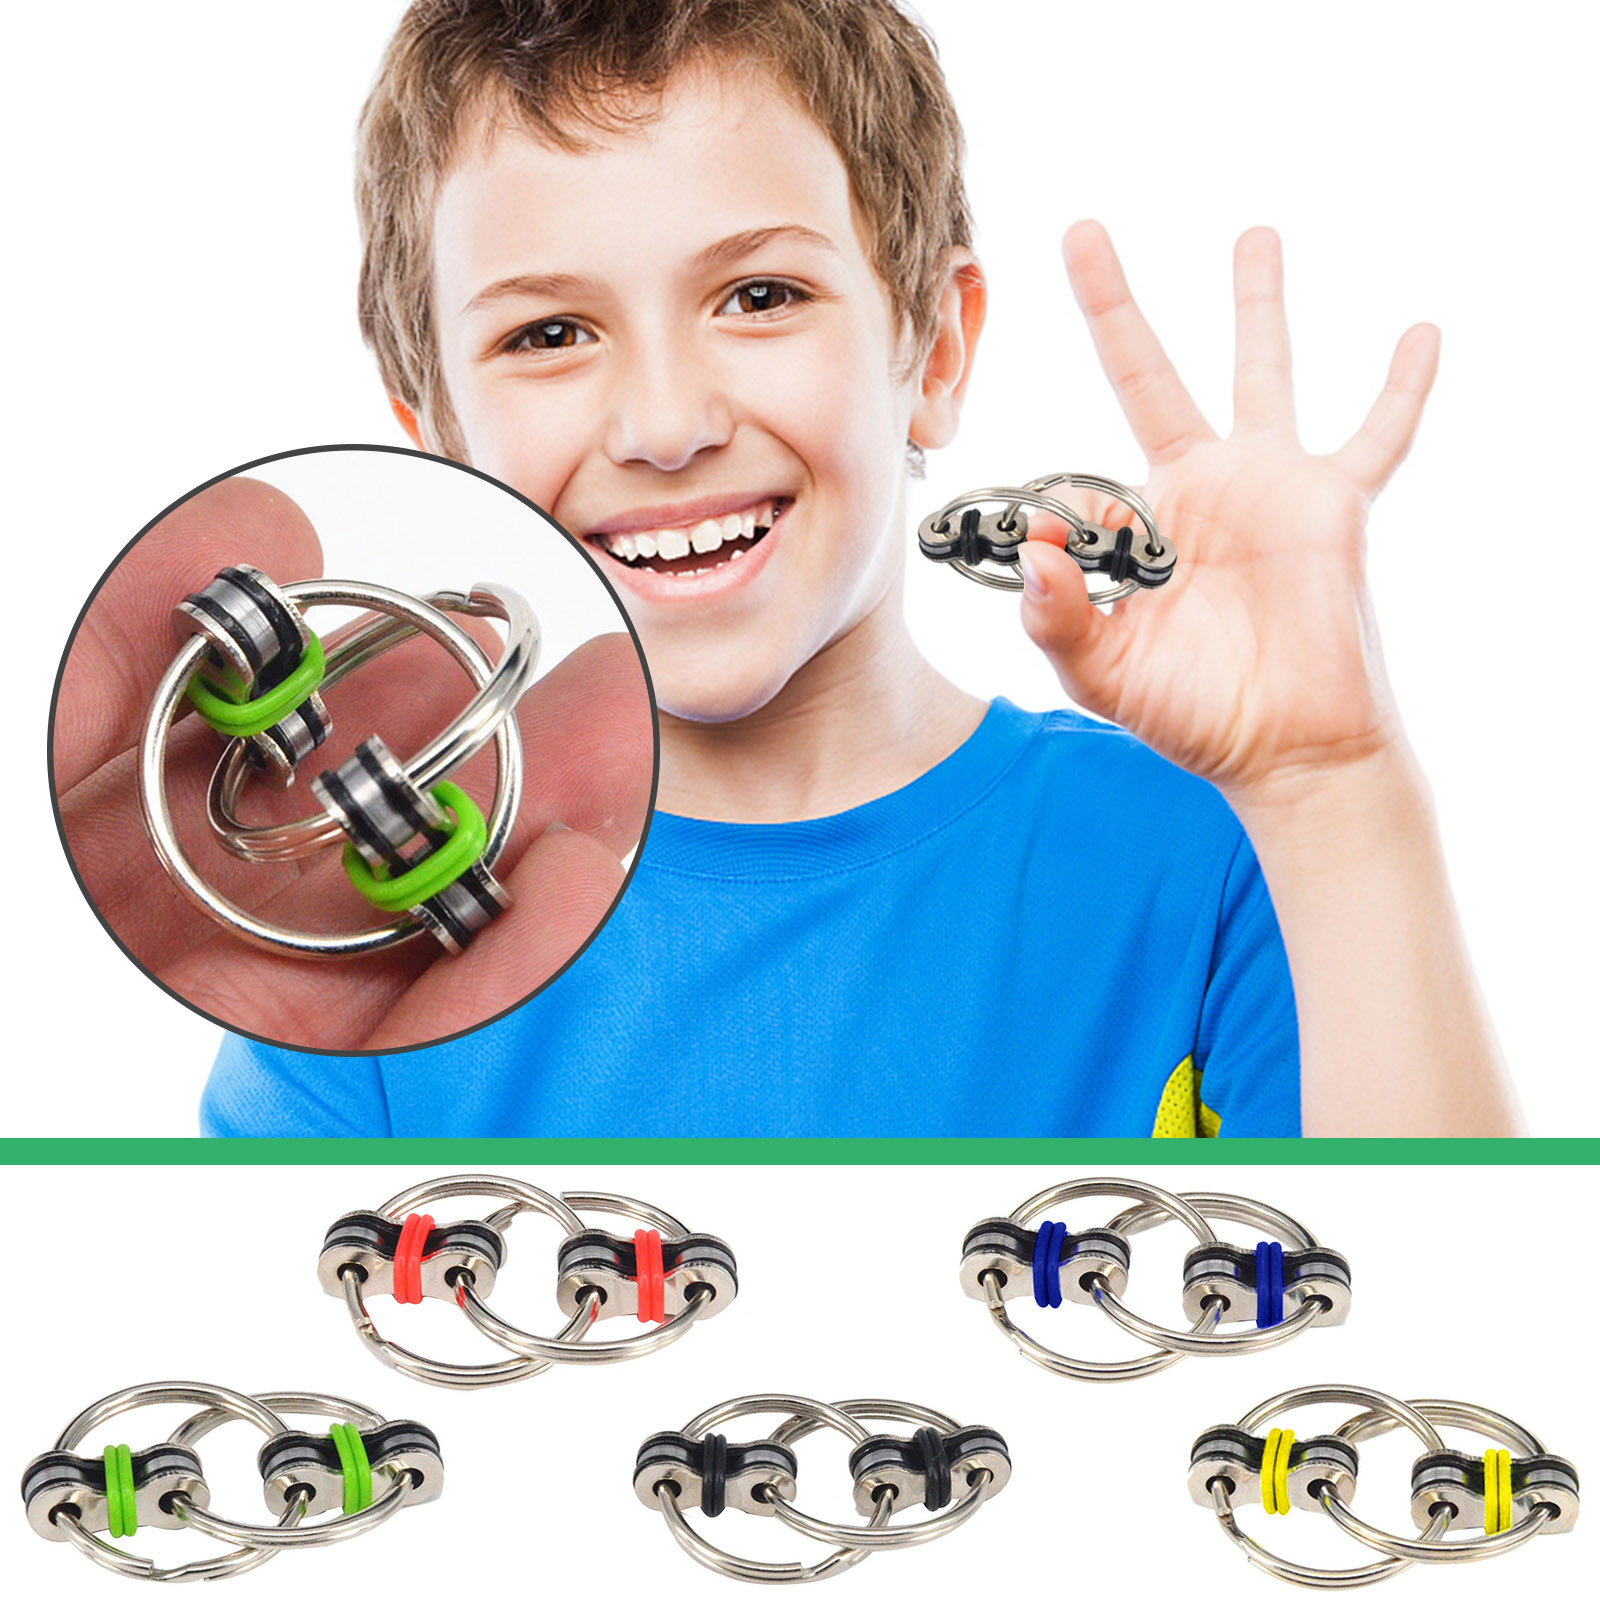 Toys Bike-Chain Fidget-Toy Autism Stress ADHD Hands Children for Funny 8-Colors Creative